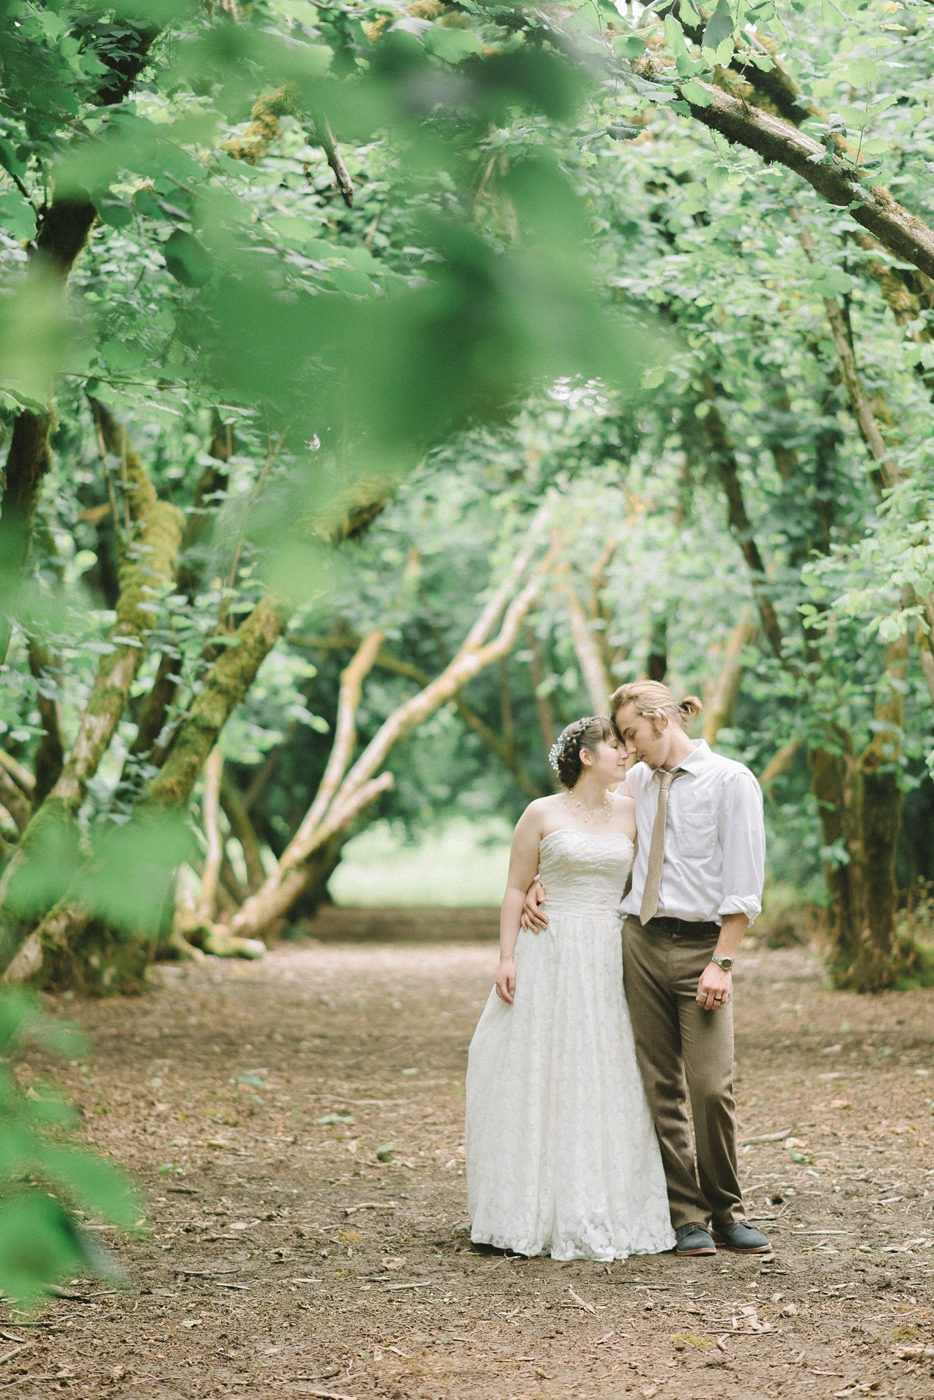 Dorris-Ranch-Springfield-Oregon-Wedding-Bride-and-Groom-Couples-Portrait-Nature-Rustic-Portland-Natural-Light-Photographer-Shelley-Marie-Photography-7